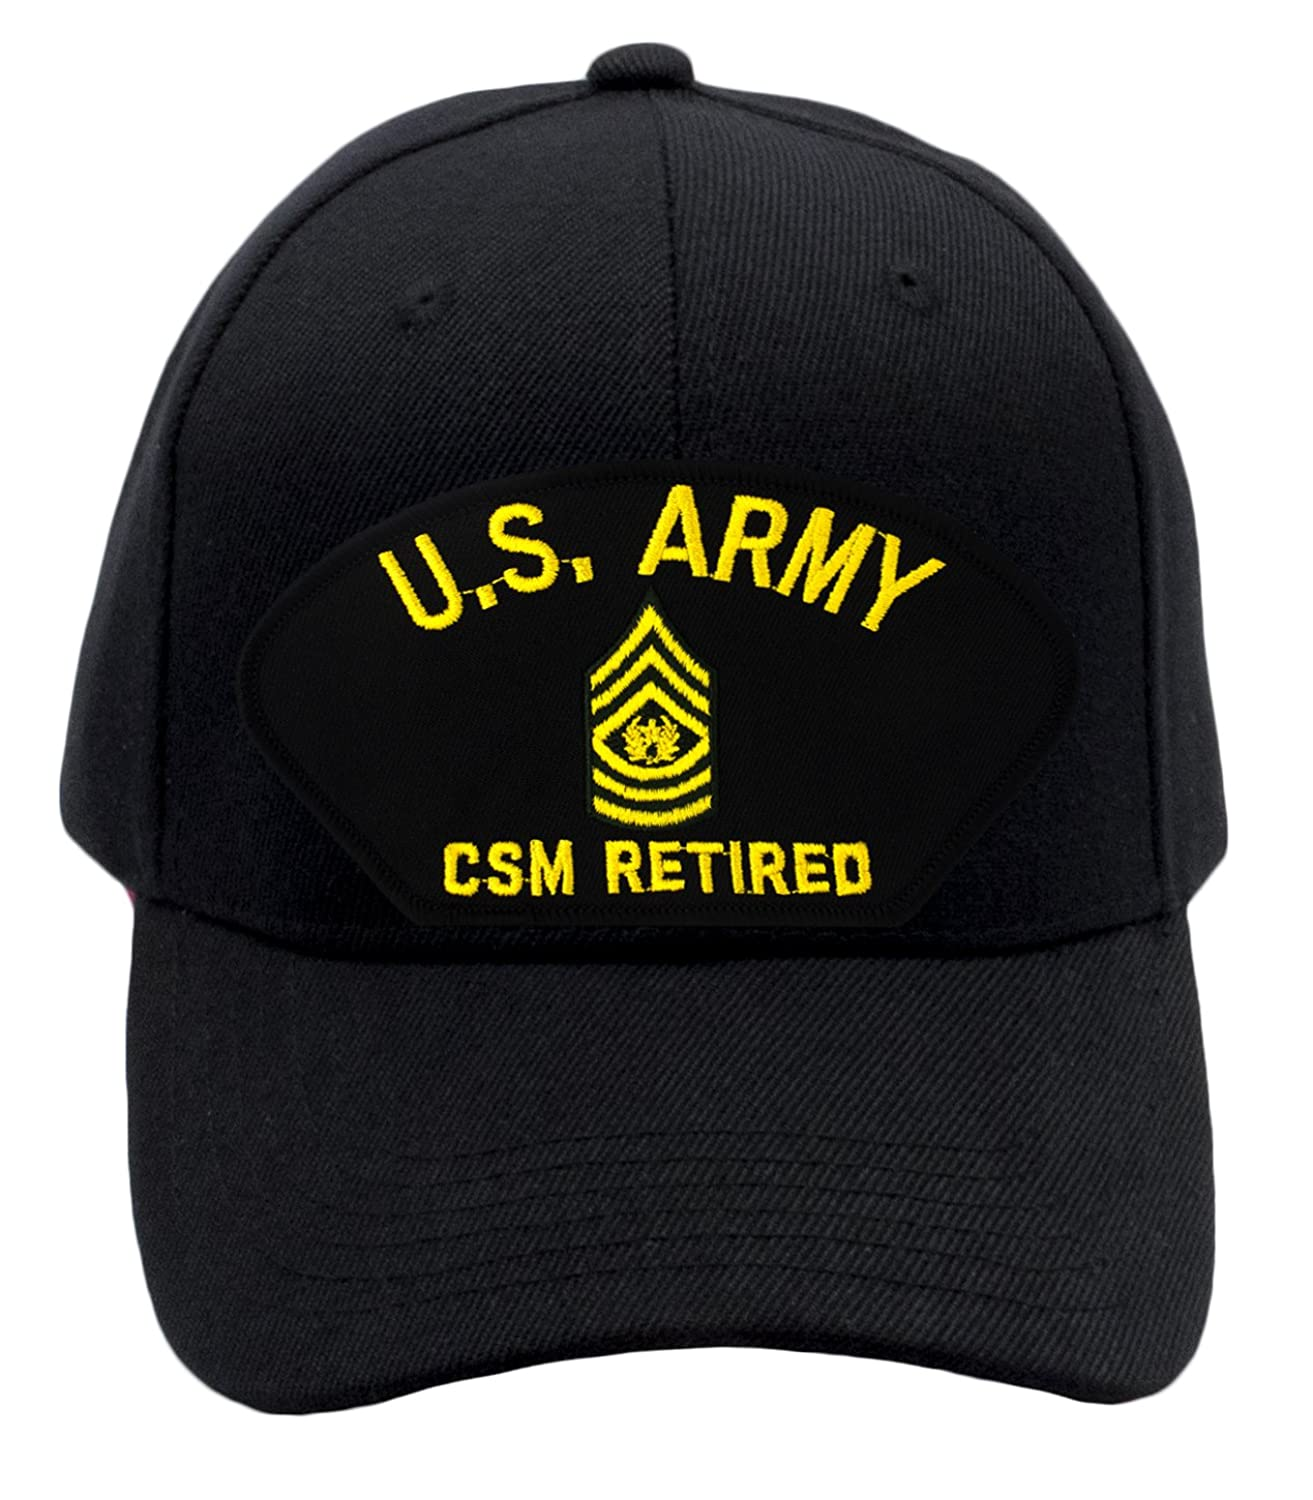 57a0d5ca97d Patchtown US Army - Command Sergeant Major Retired Hat Ballcap (Black)  Adjustable One Size Fits Most